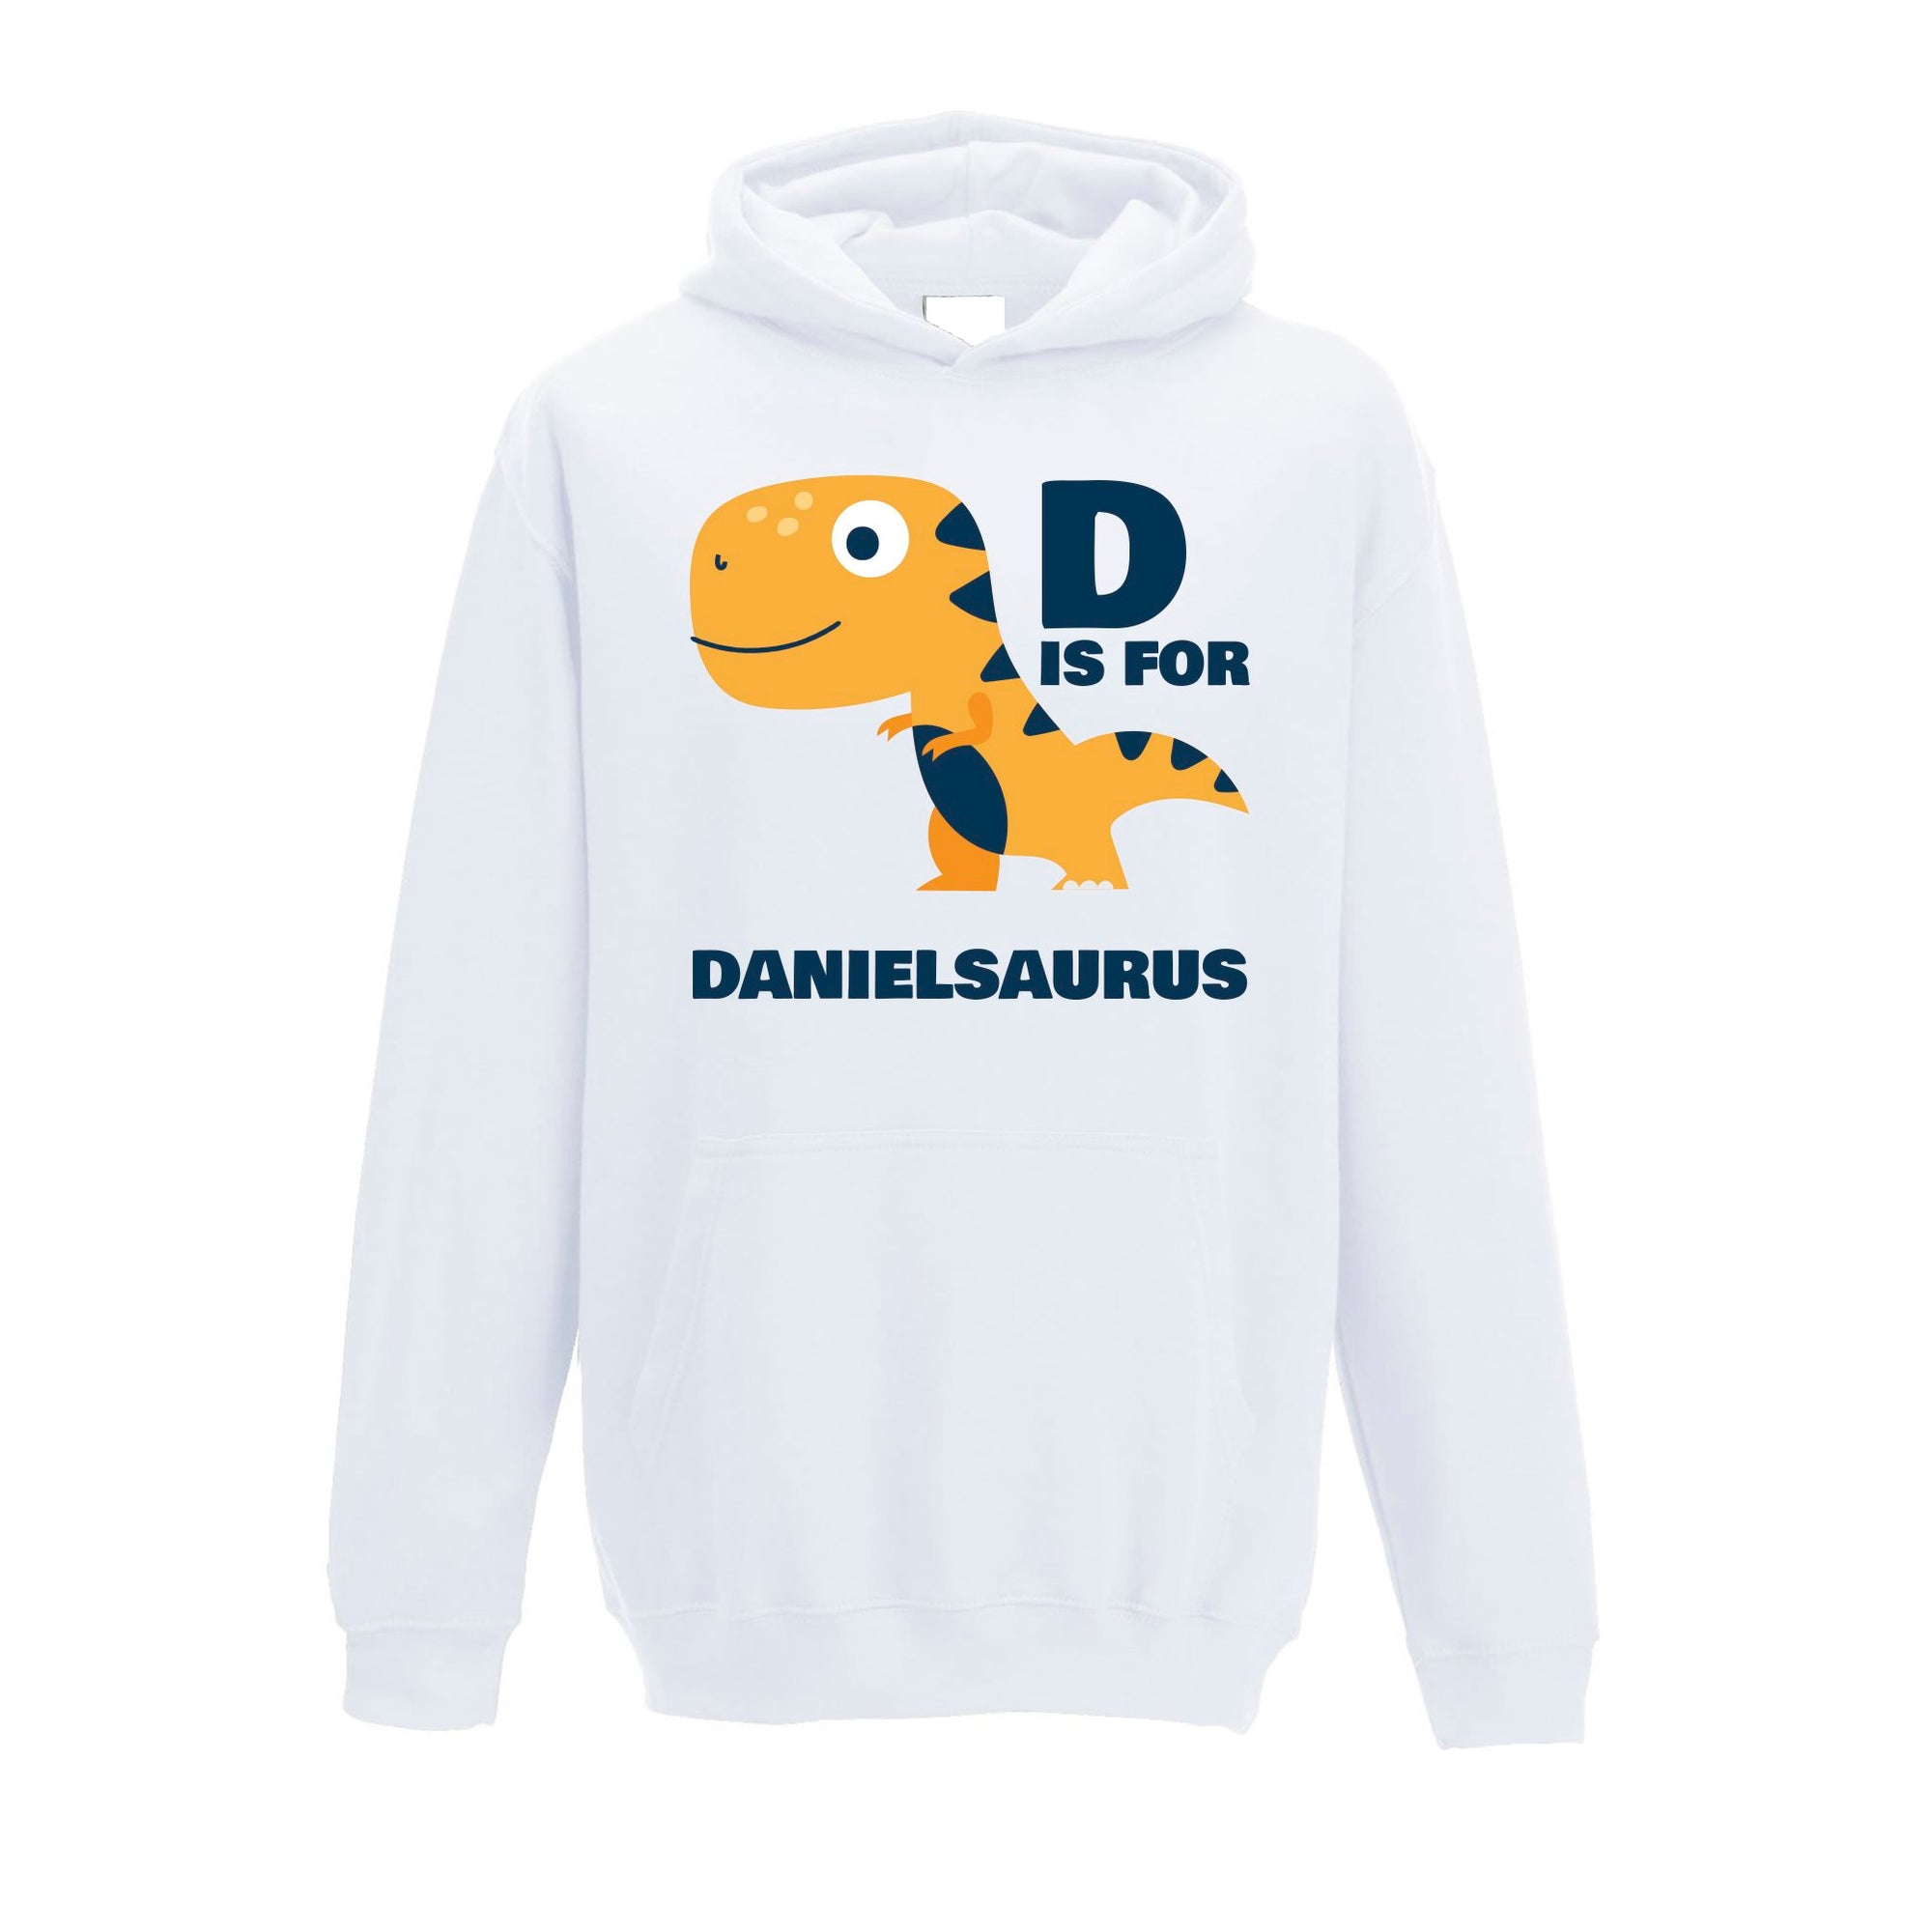 Dinosaur Kids Hoodie Daniel Saurus Birth Name Childs